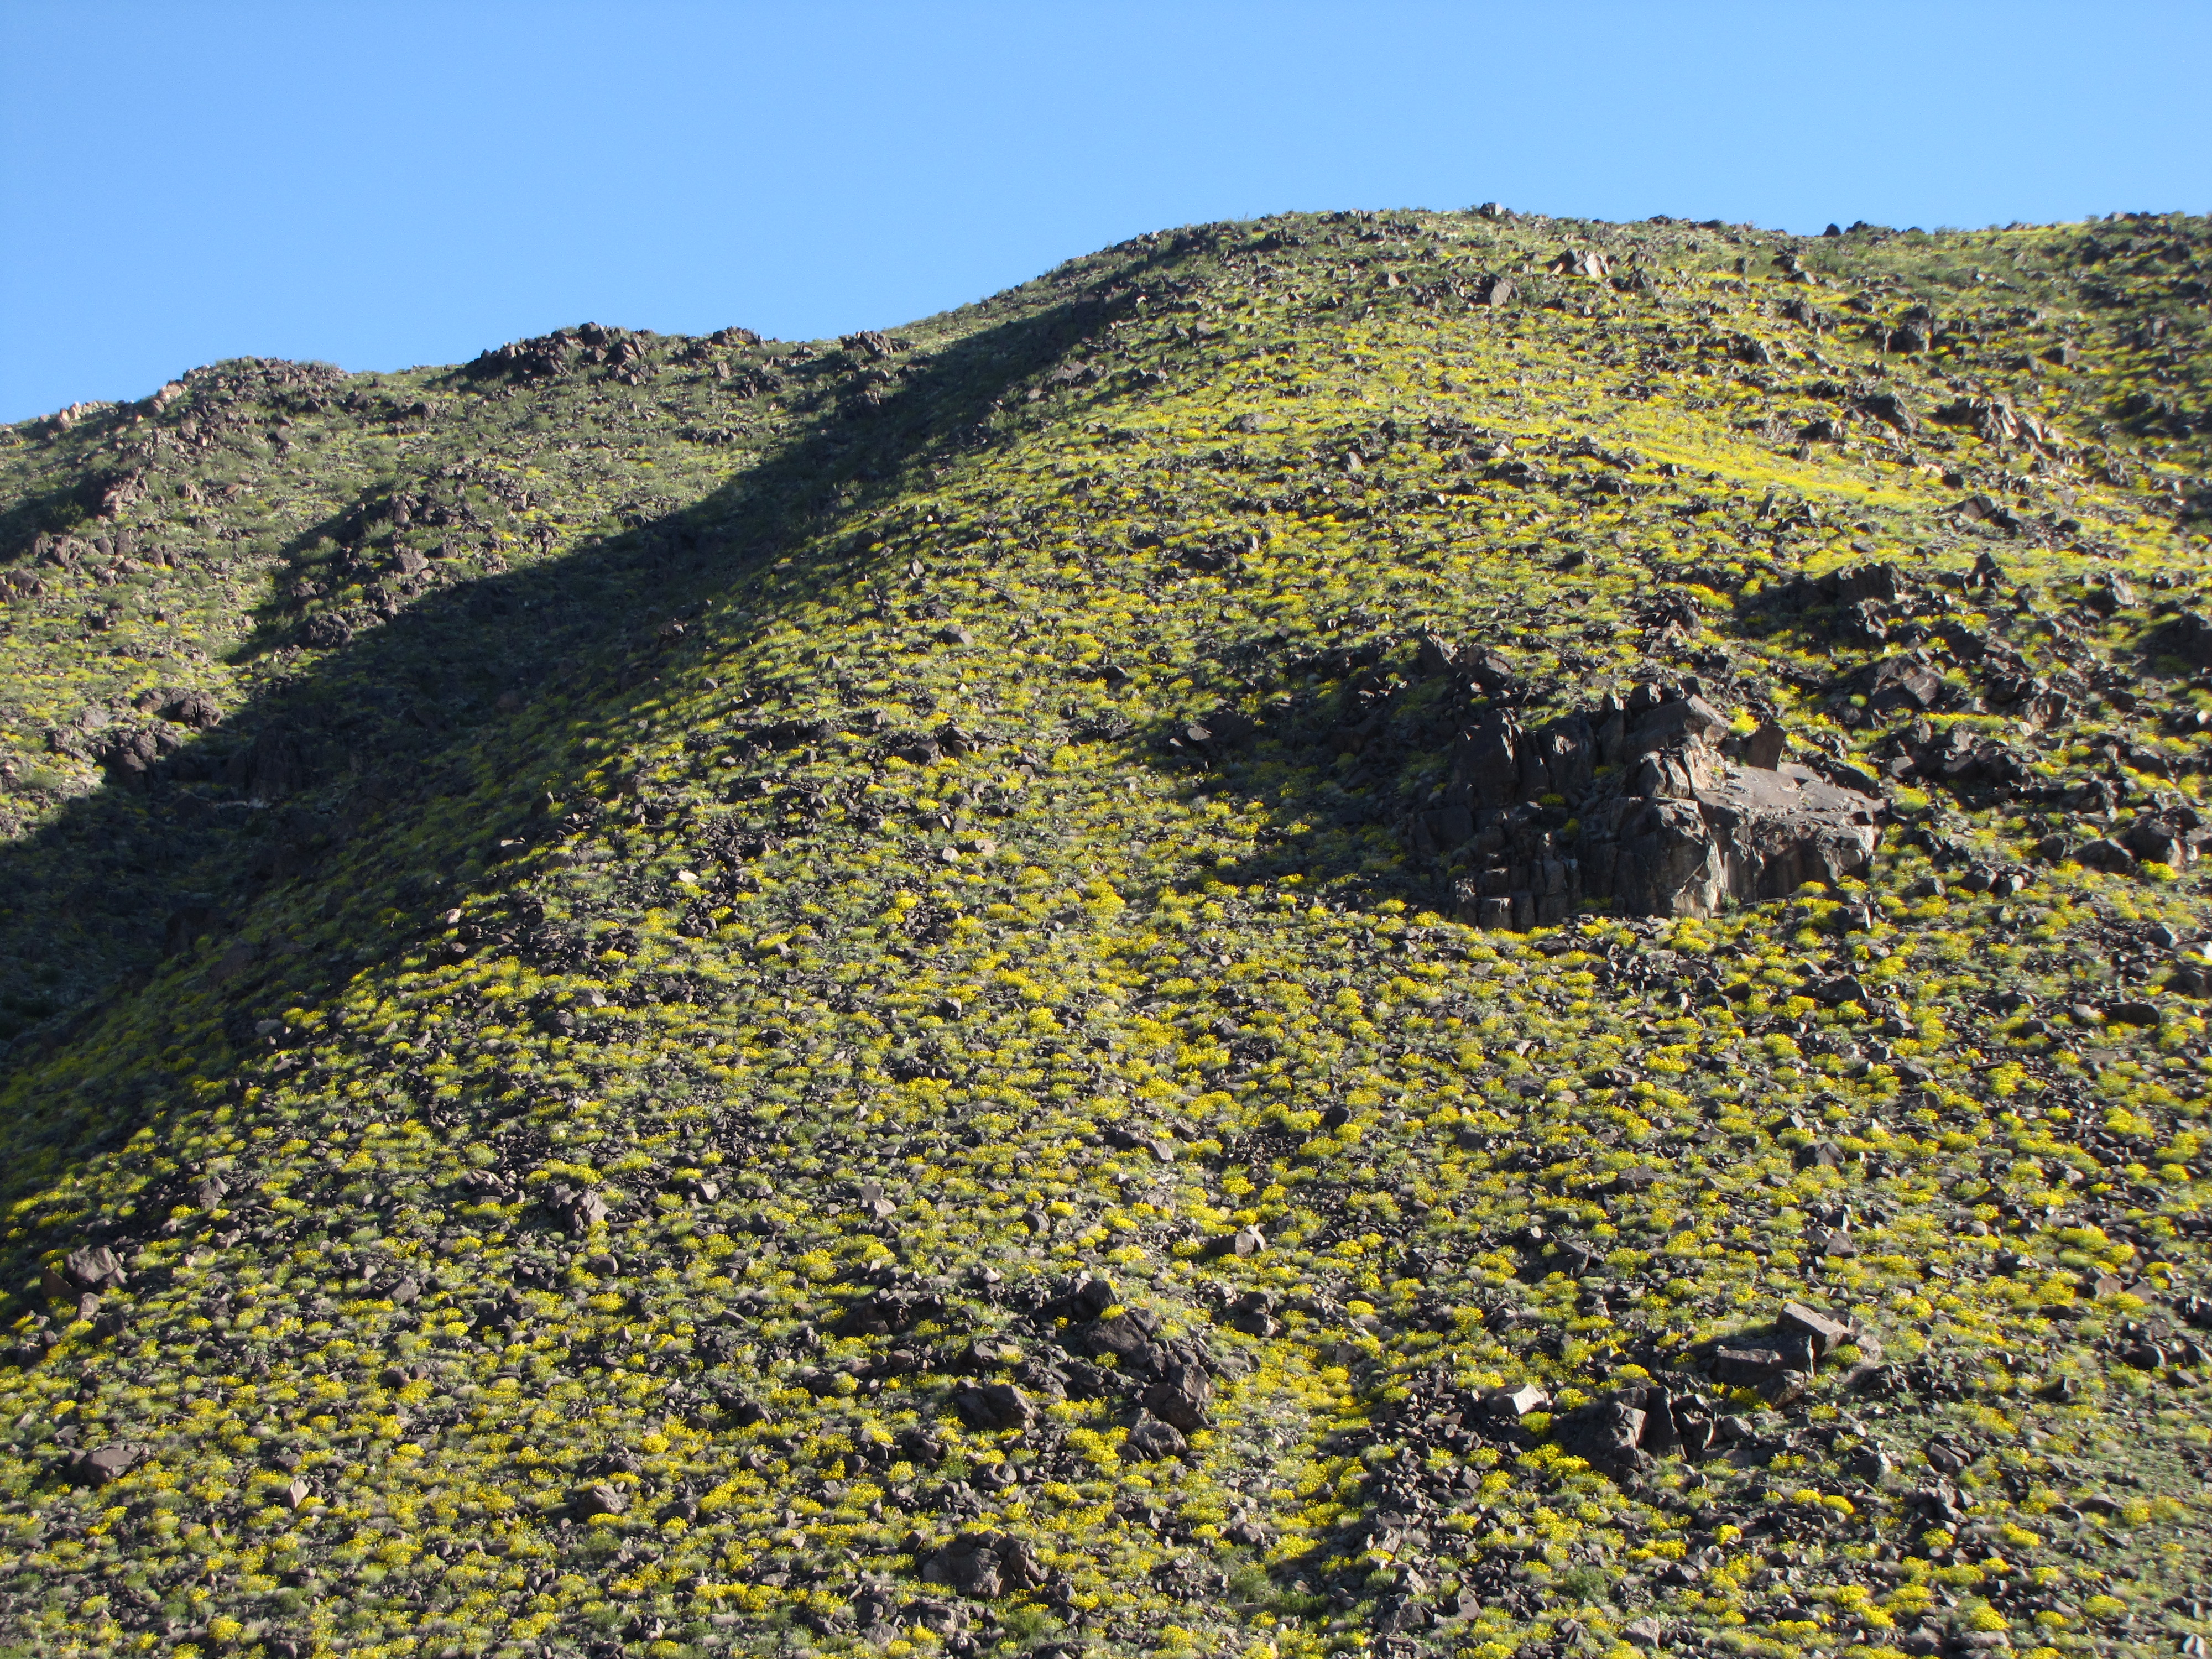 Color photo of a hillside covered in pops of yellow flowers. NPS / Neil Frakes